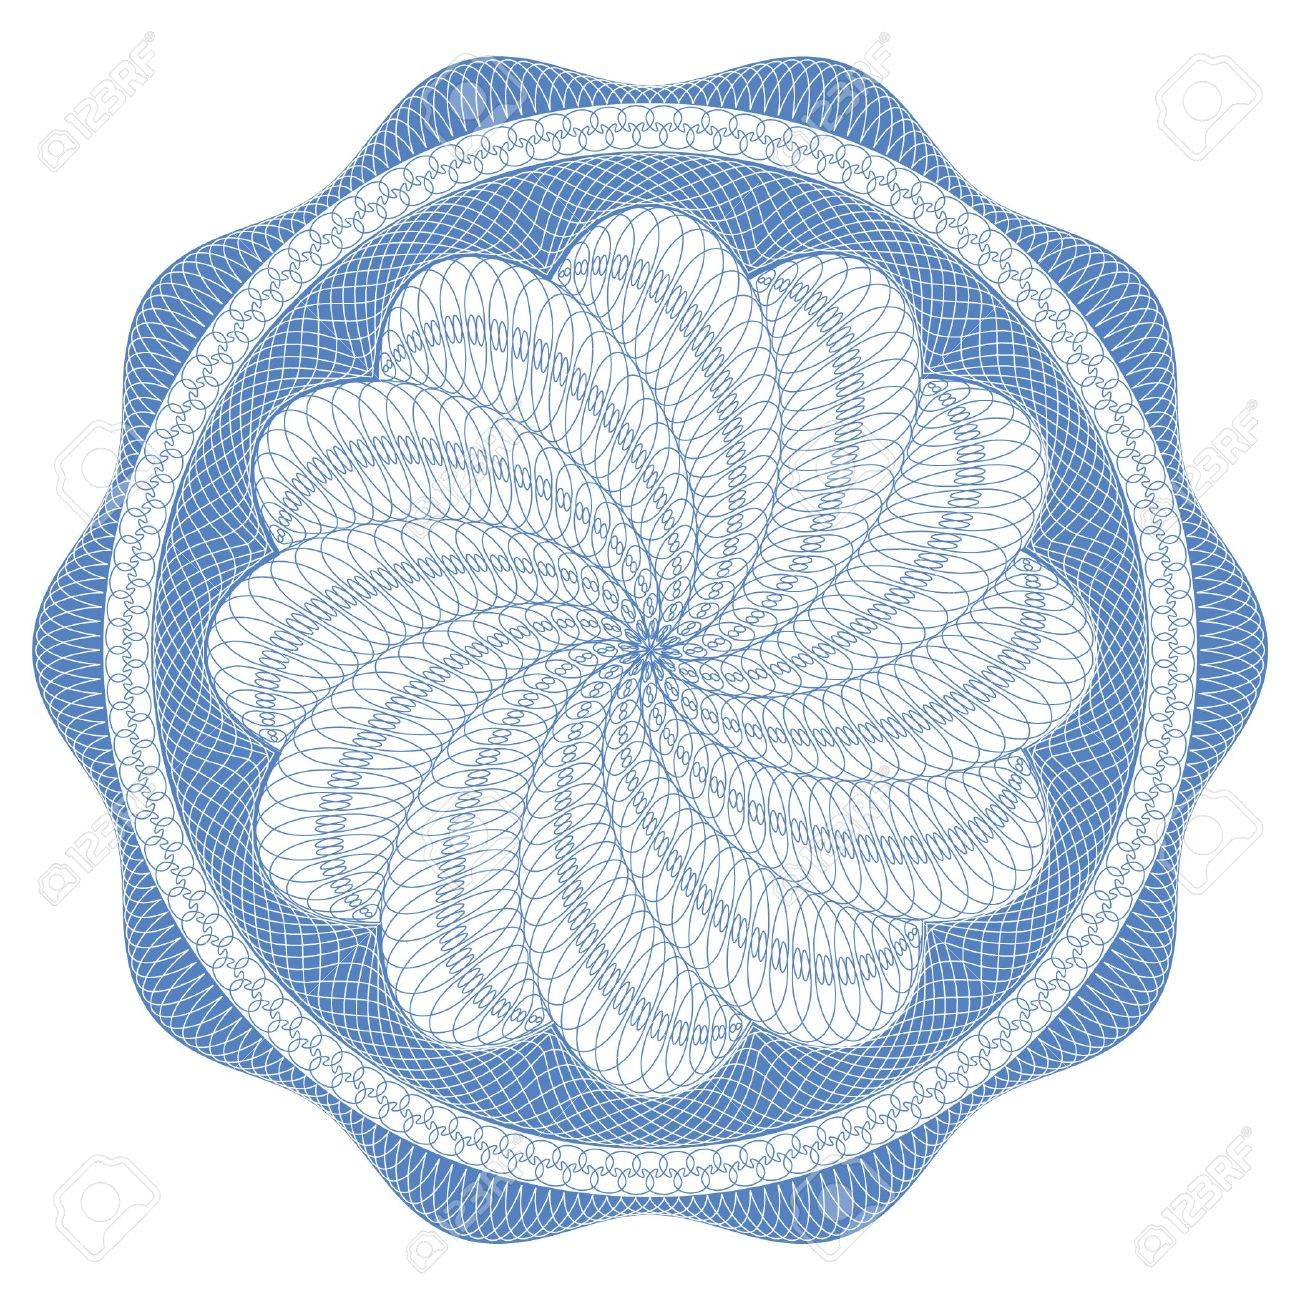 Guilloche rosette,  pattern for currency, certificate or diplomas Stock Photo - 6926460